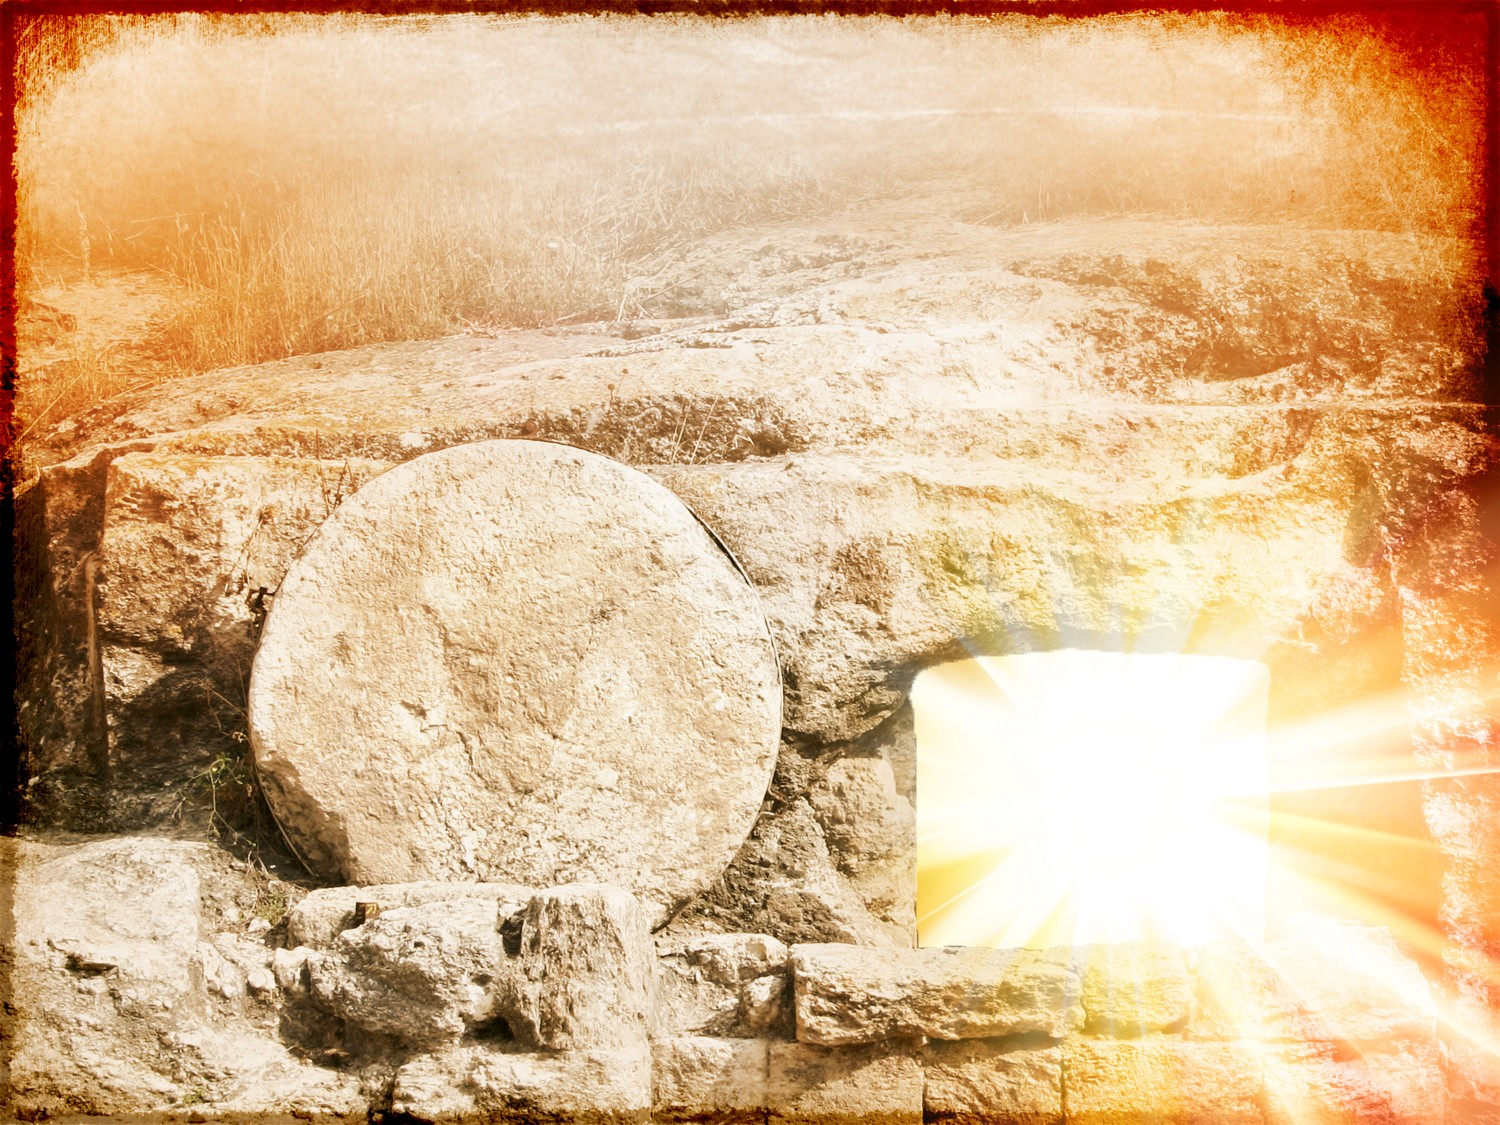 happy easter wishes resurrection jesus alive risen from dead empty tomb